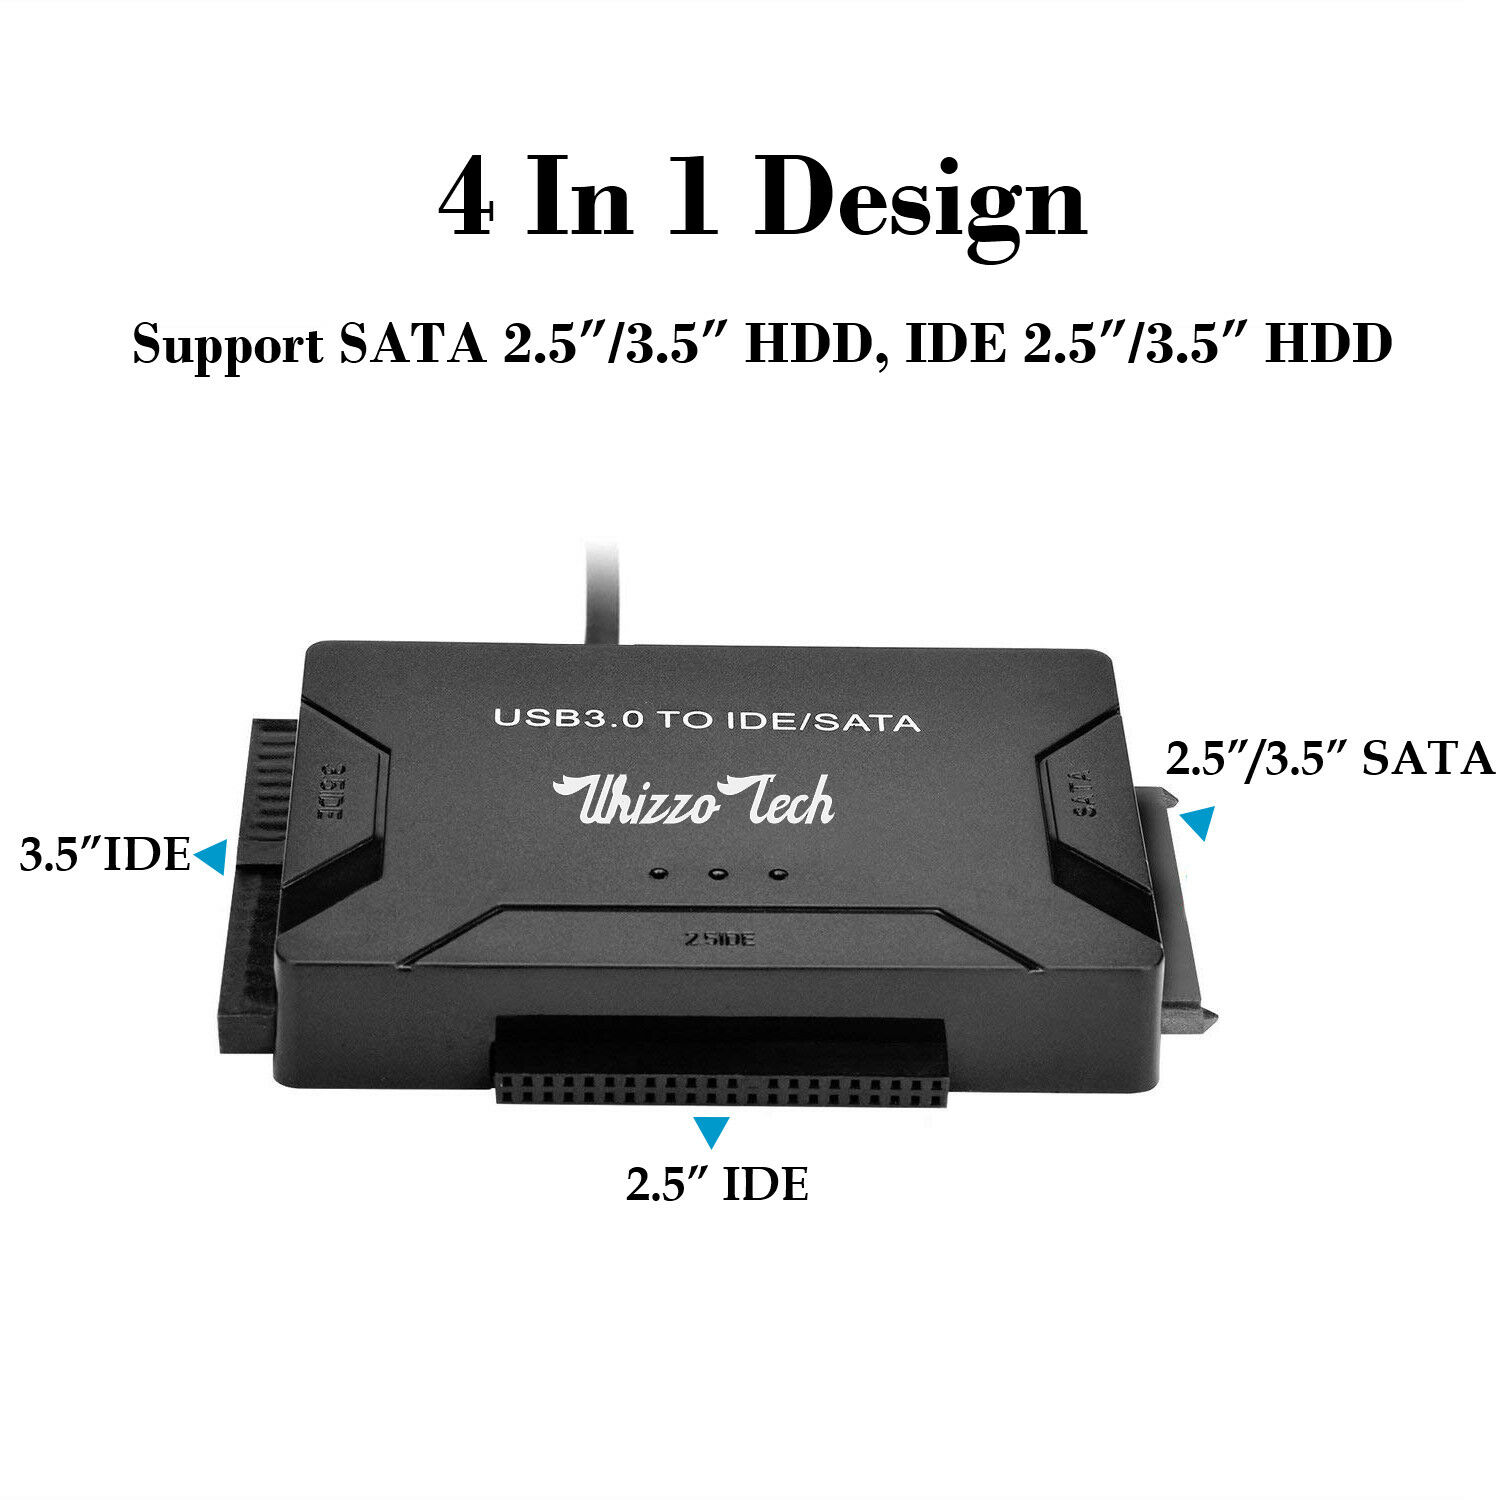 USB 3.0 to IDE/SATA Converter Adapter Kit For 2.5″/3.5″ SATA/IDE/SSD Hard Drive Computer Cables & Connectors